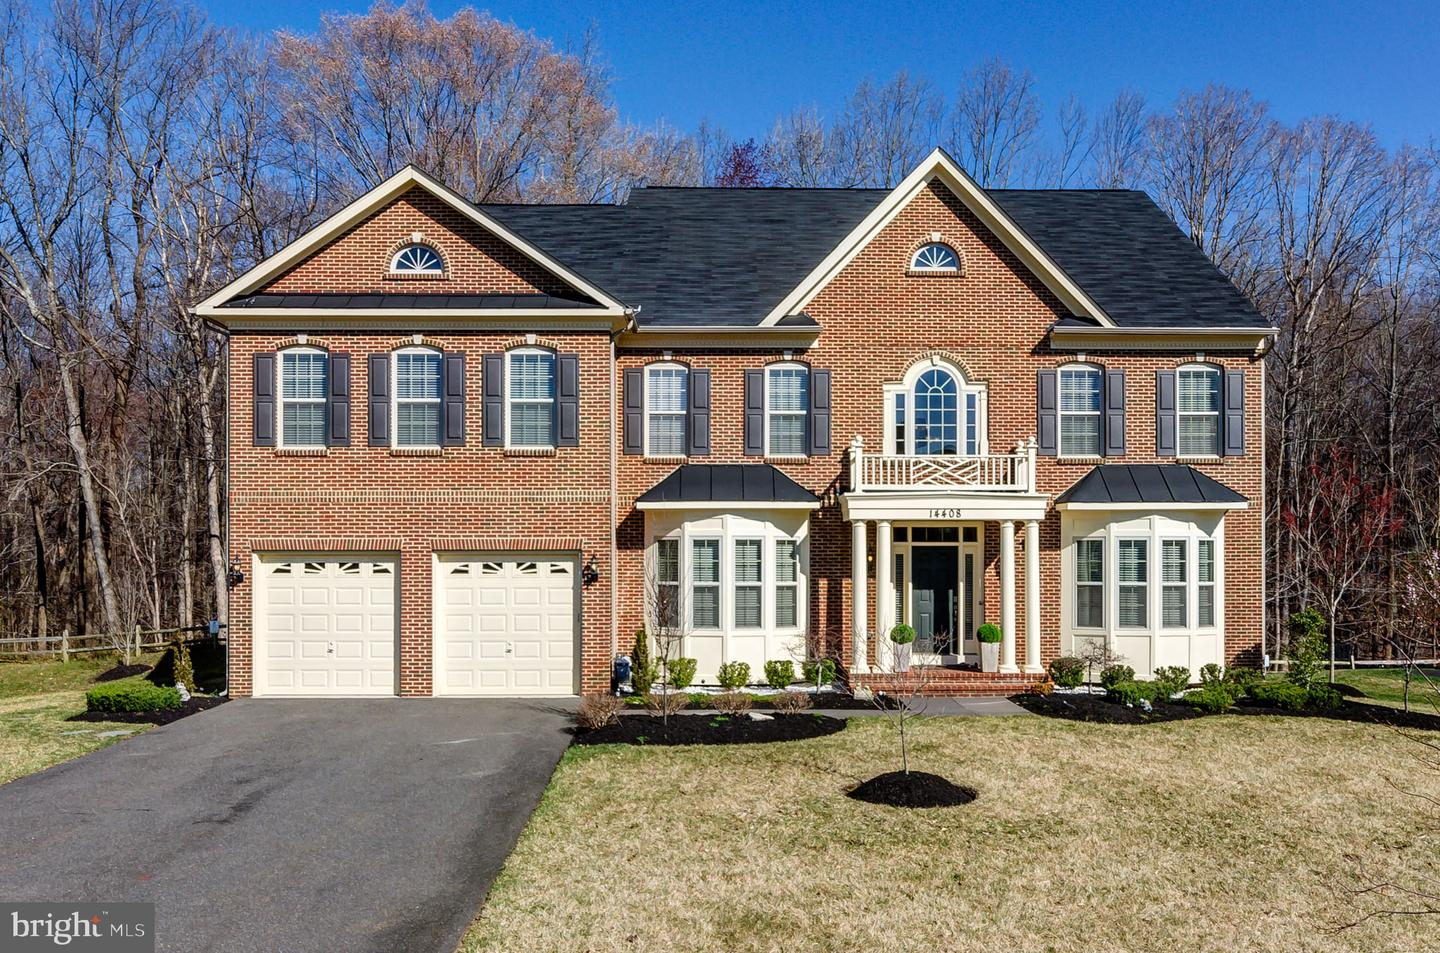 Single Family Home for Sale at 14408 Derby Ridge Road 14408 Derby Ridge Road Bowie, Maryland 20721 United States